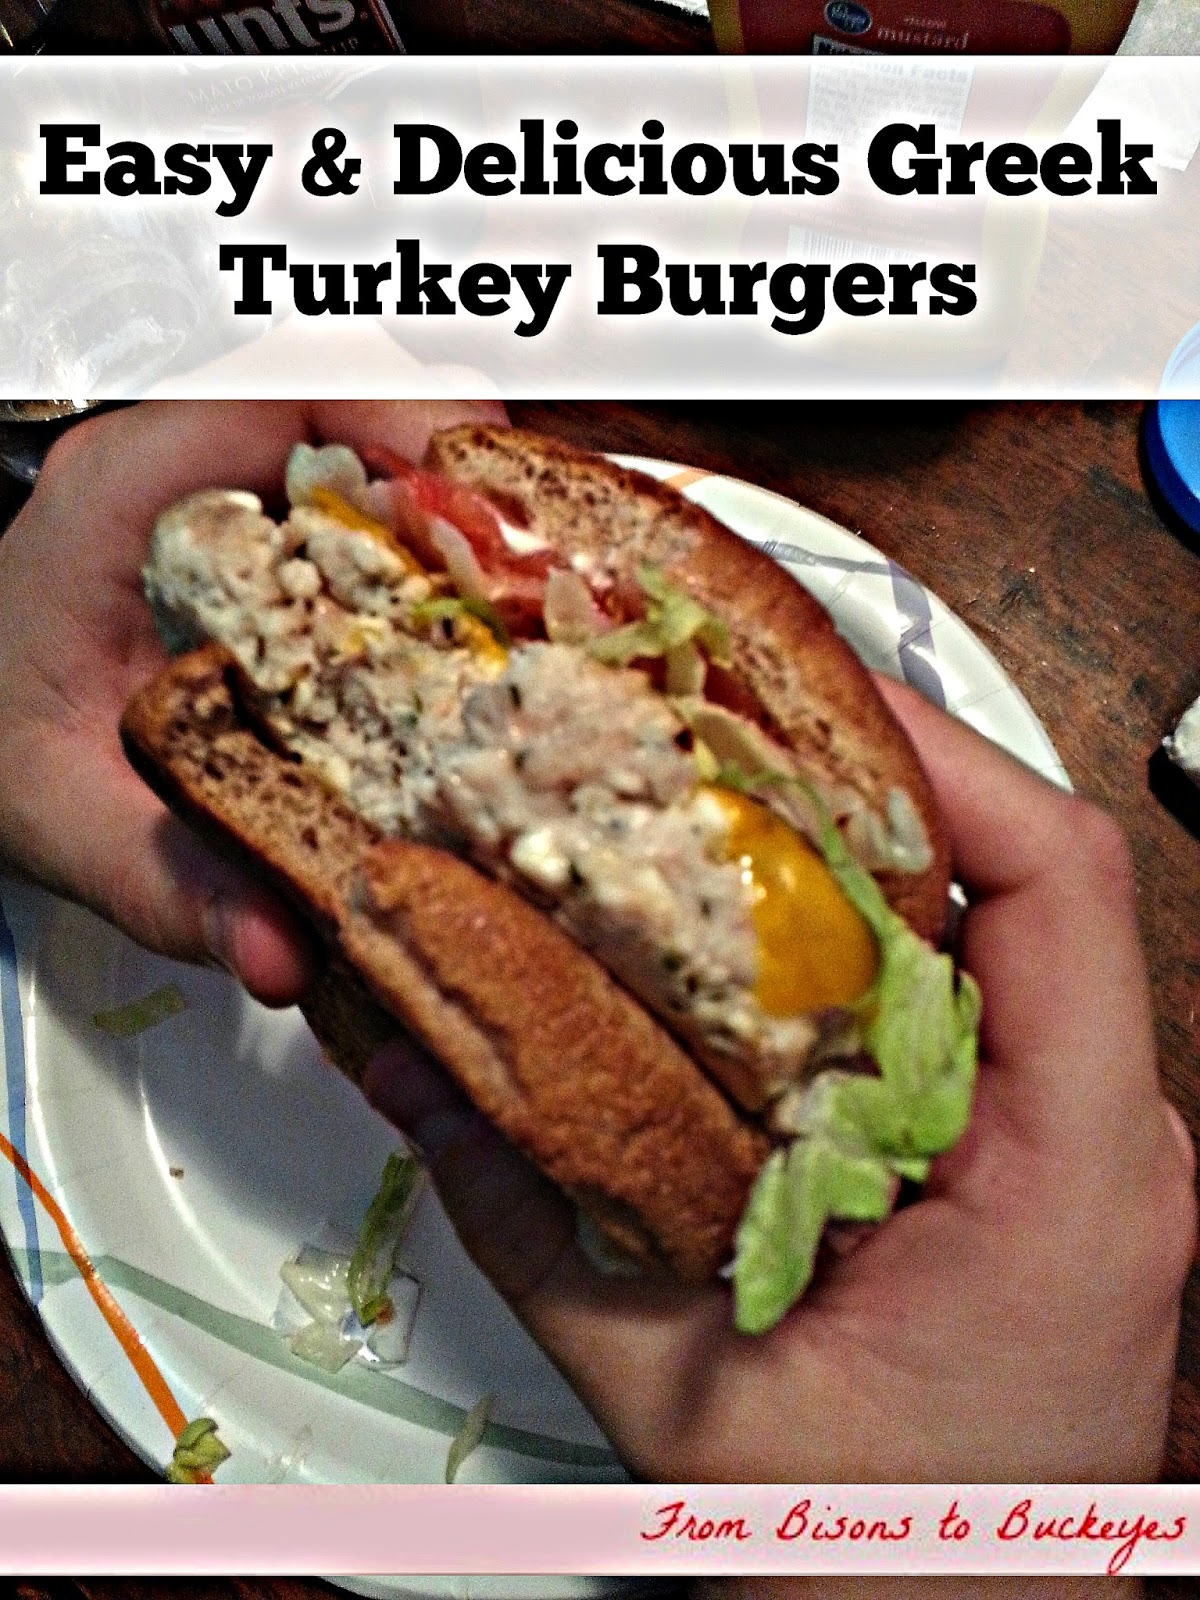 Easy & Delicious Greek Turkey Burgers | Enduring All Things